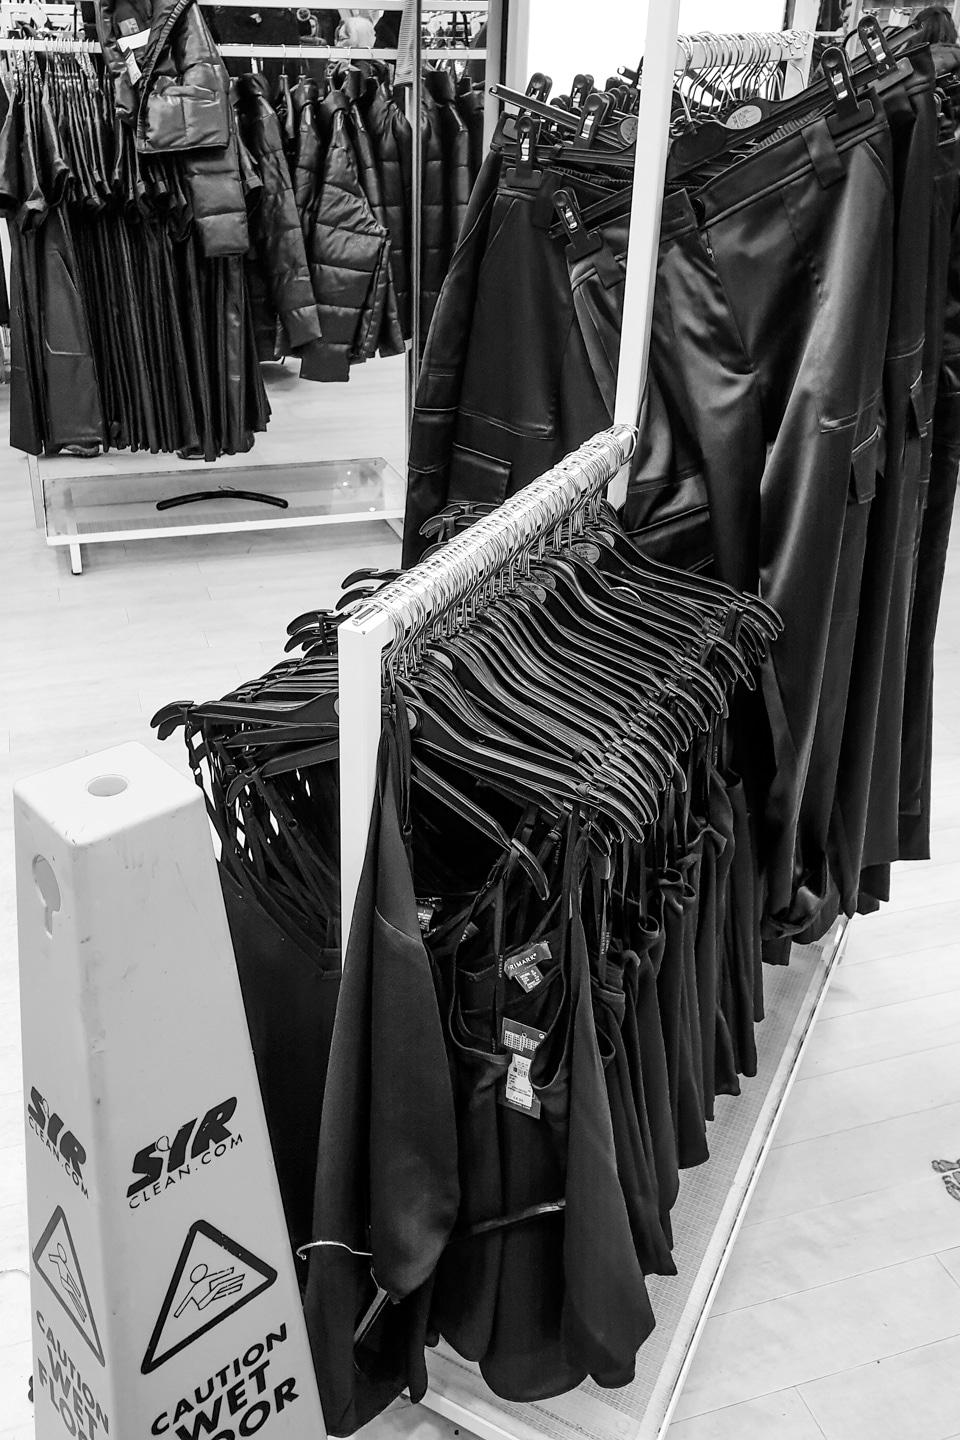 Black clothing pulled from hangers